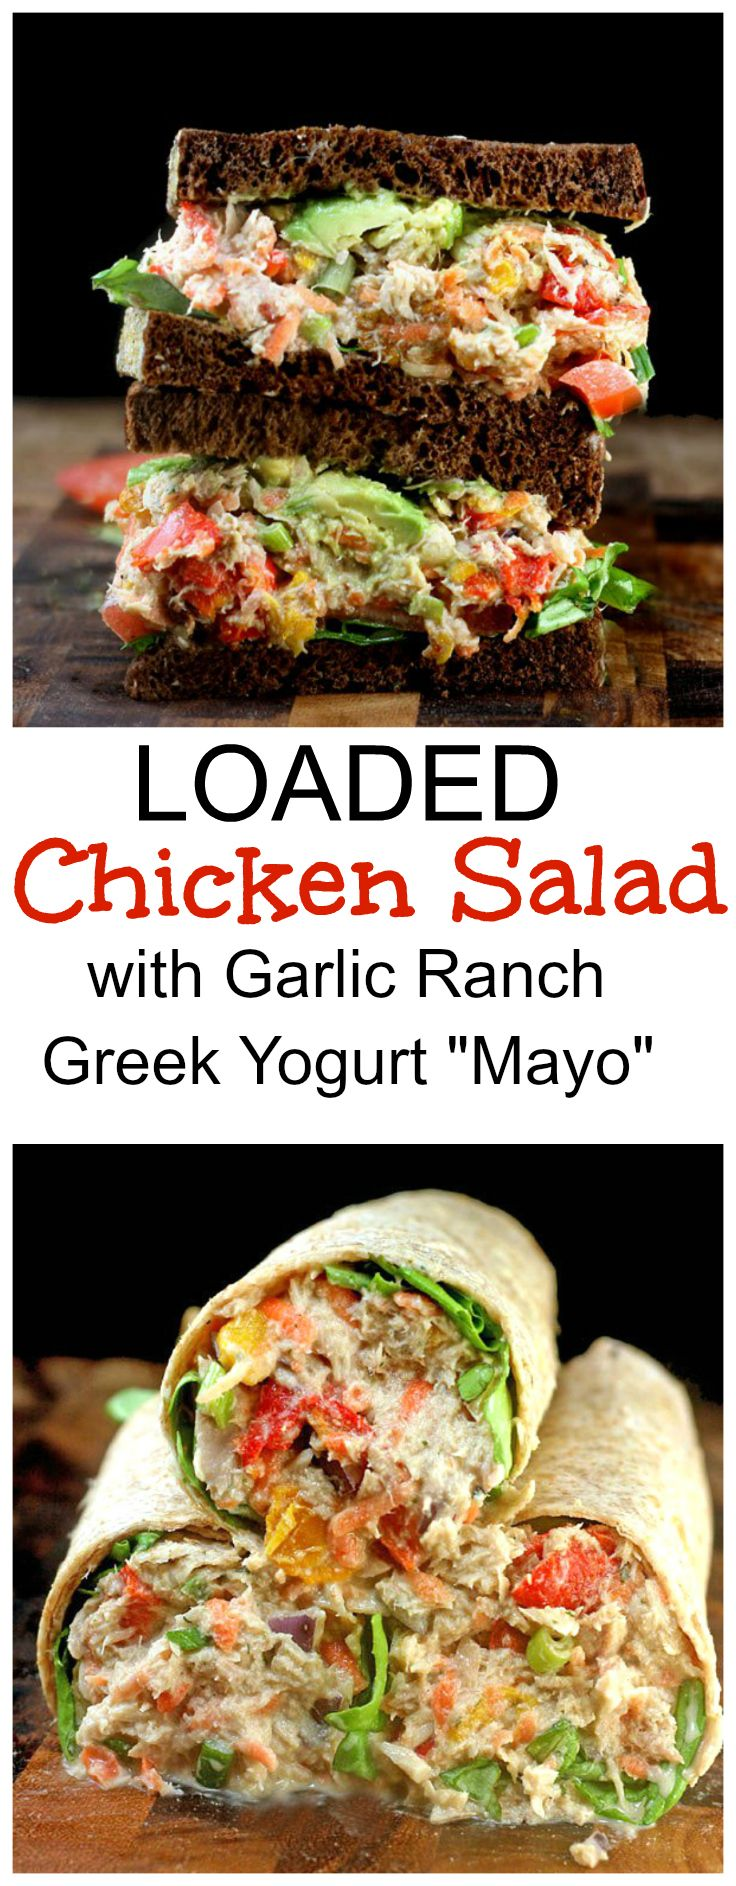 """LOADED Chicken Salad with Creamy Greek Yogurt Garlic Ranch """"Mato"""".  The best chicken salad you might ever have!"""